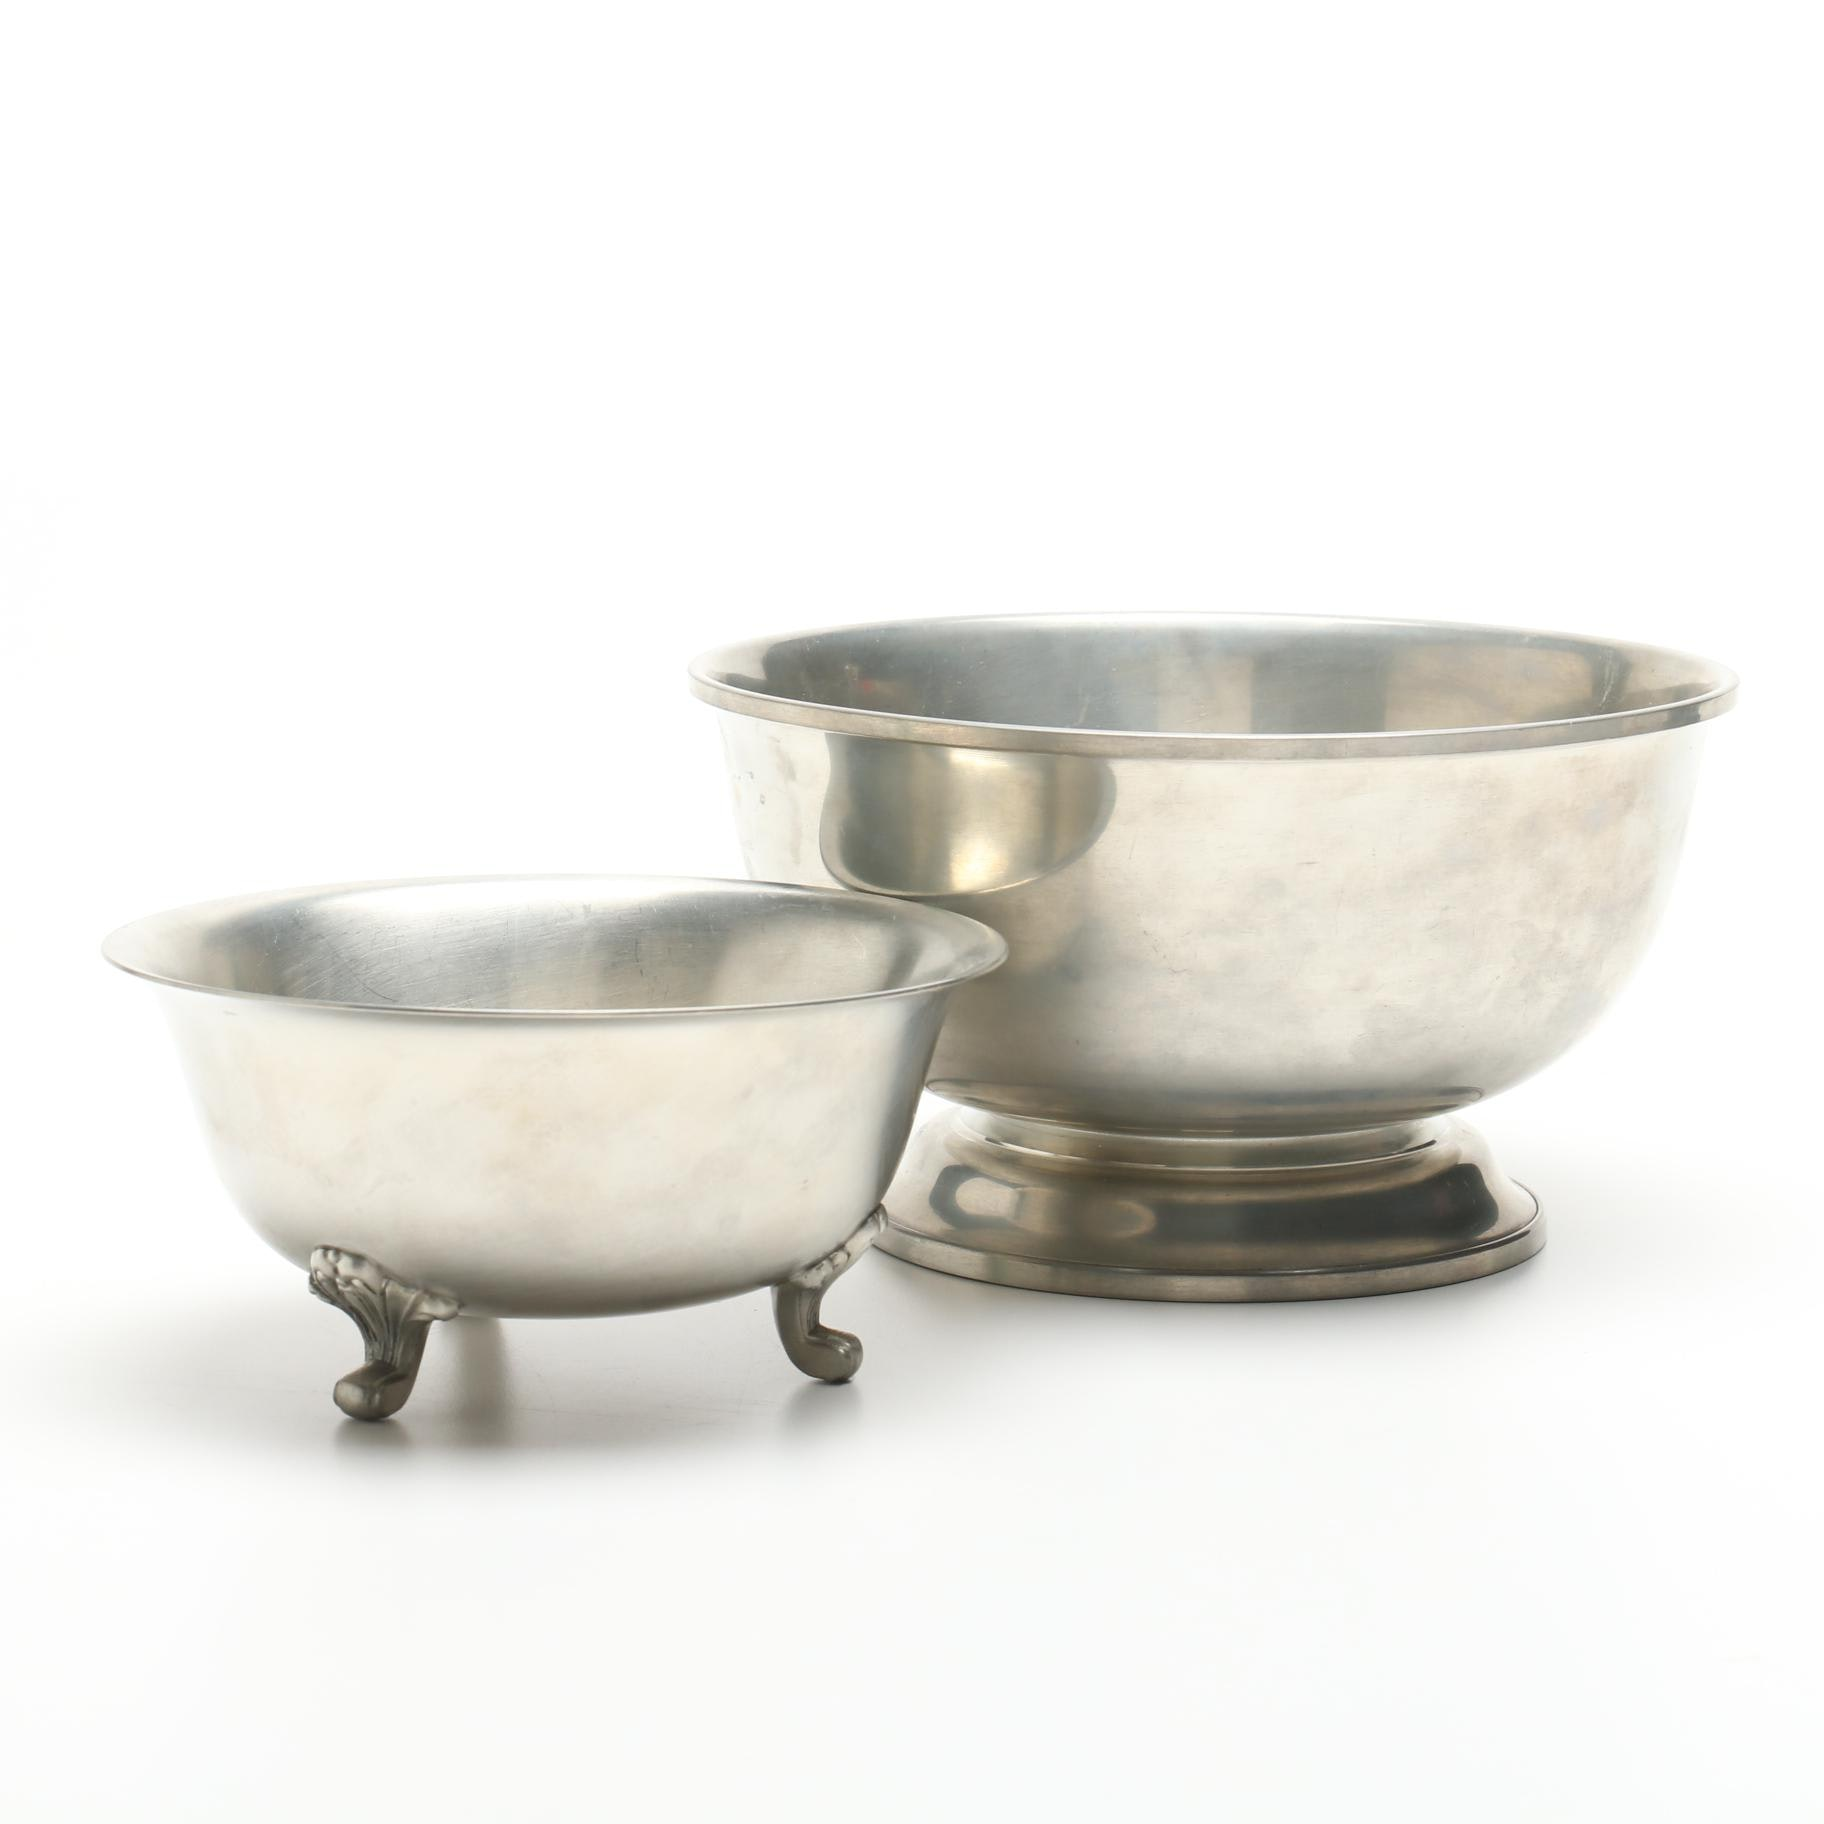 Woodbury Pewter's Paul Revere Style Bowl with Preisner Pewter Footed Candy Dish